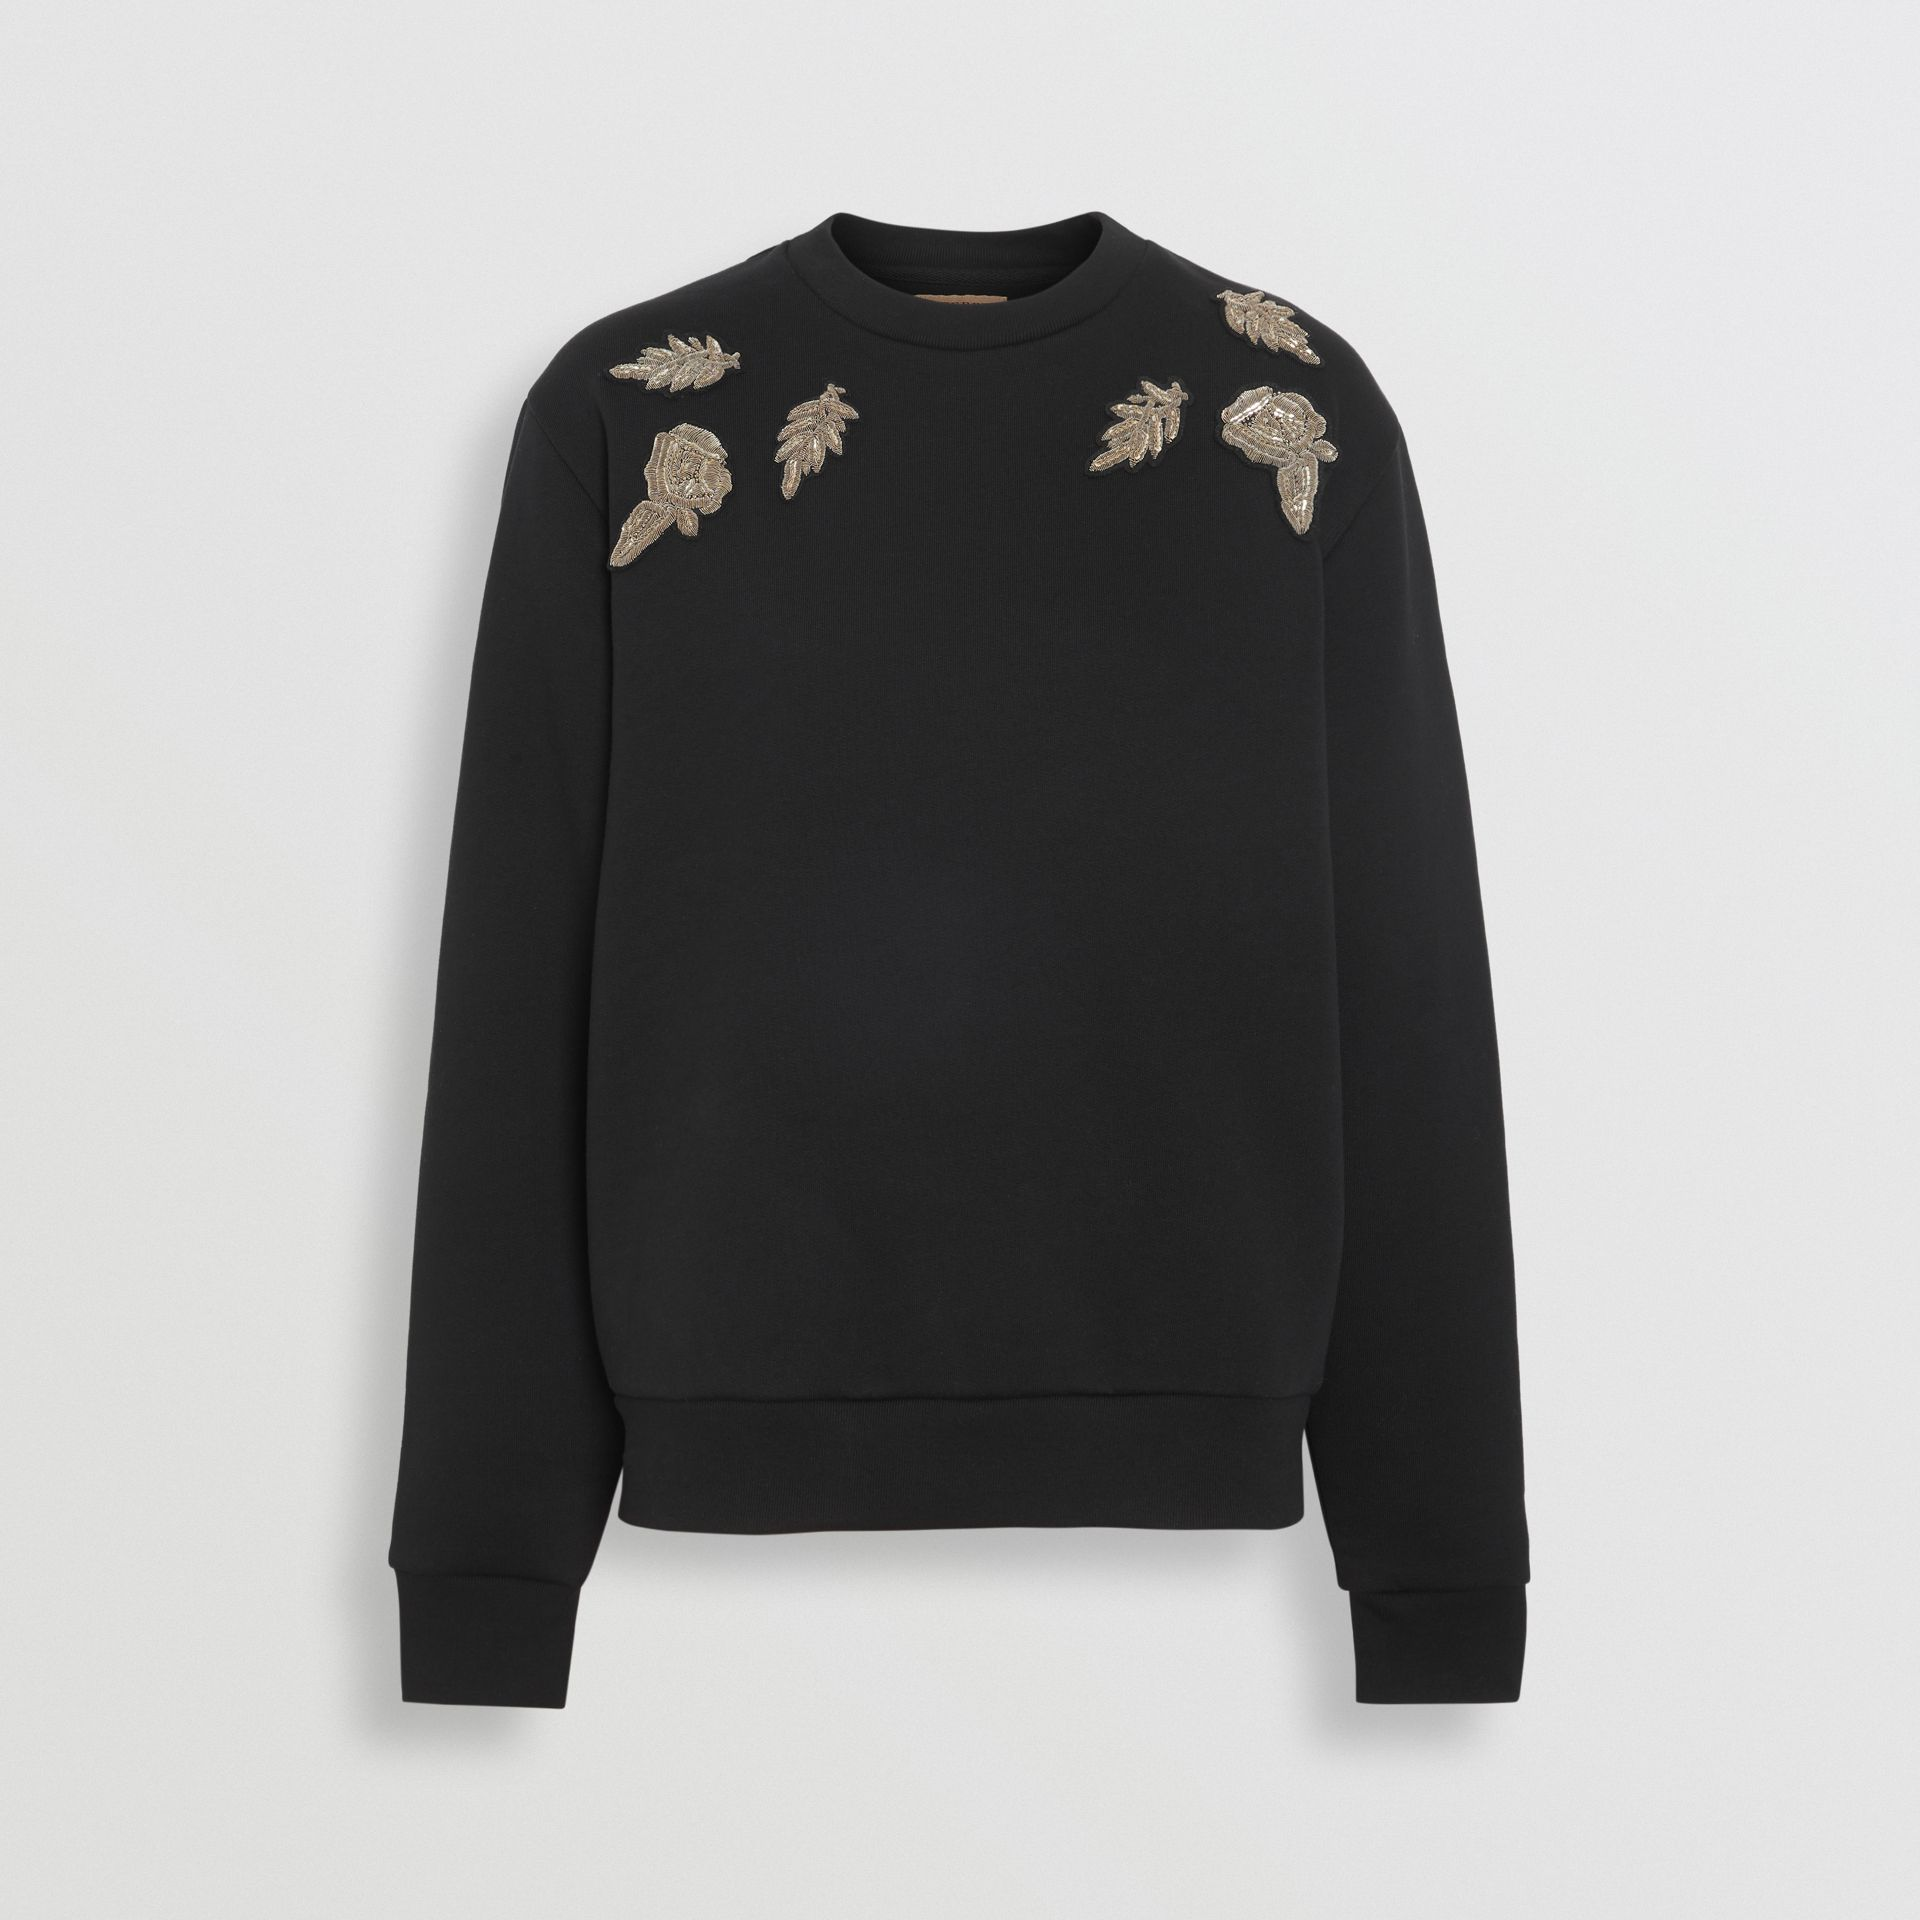 Bullion Floral Cotton Blend Sweatshirt in Black - Women | Burberry - gallery image 3